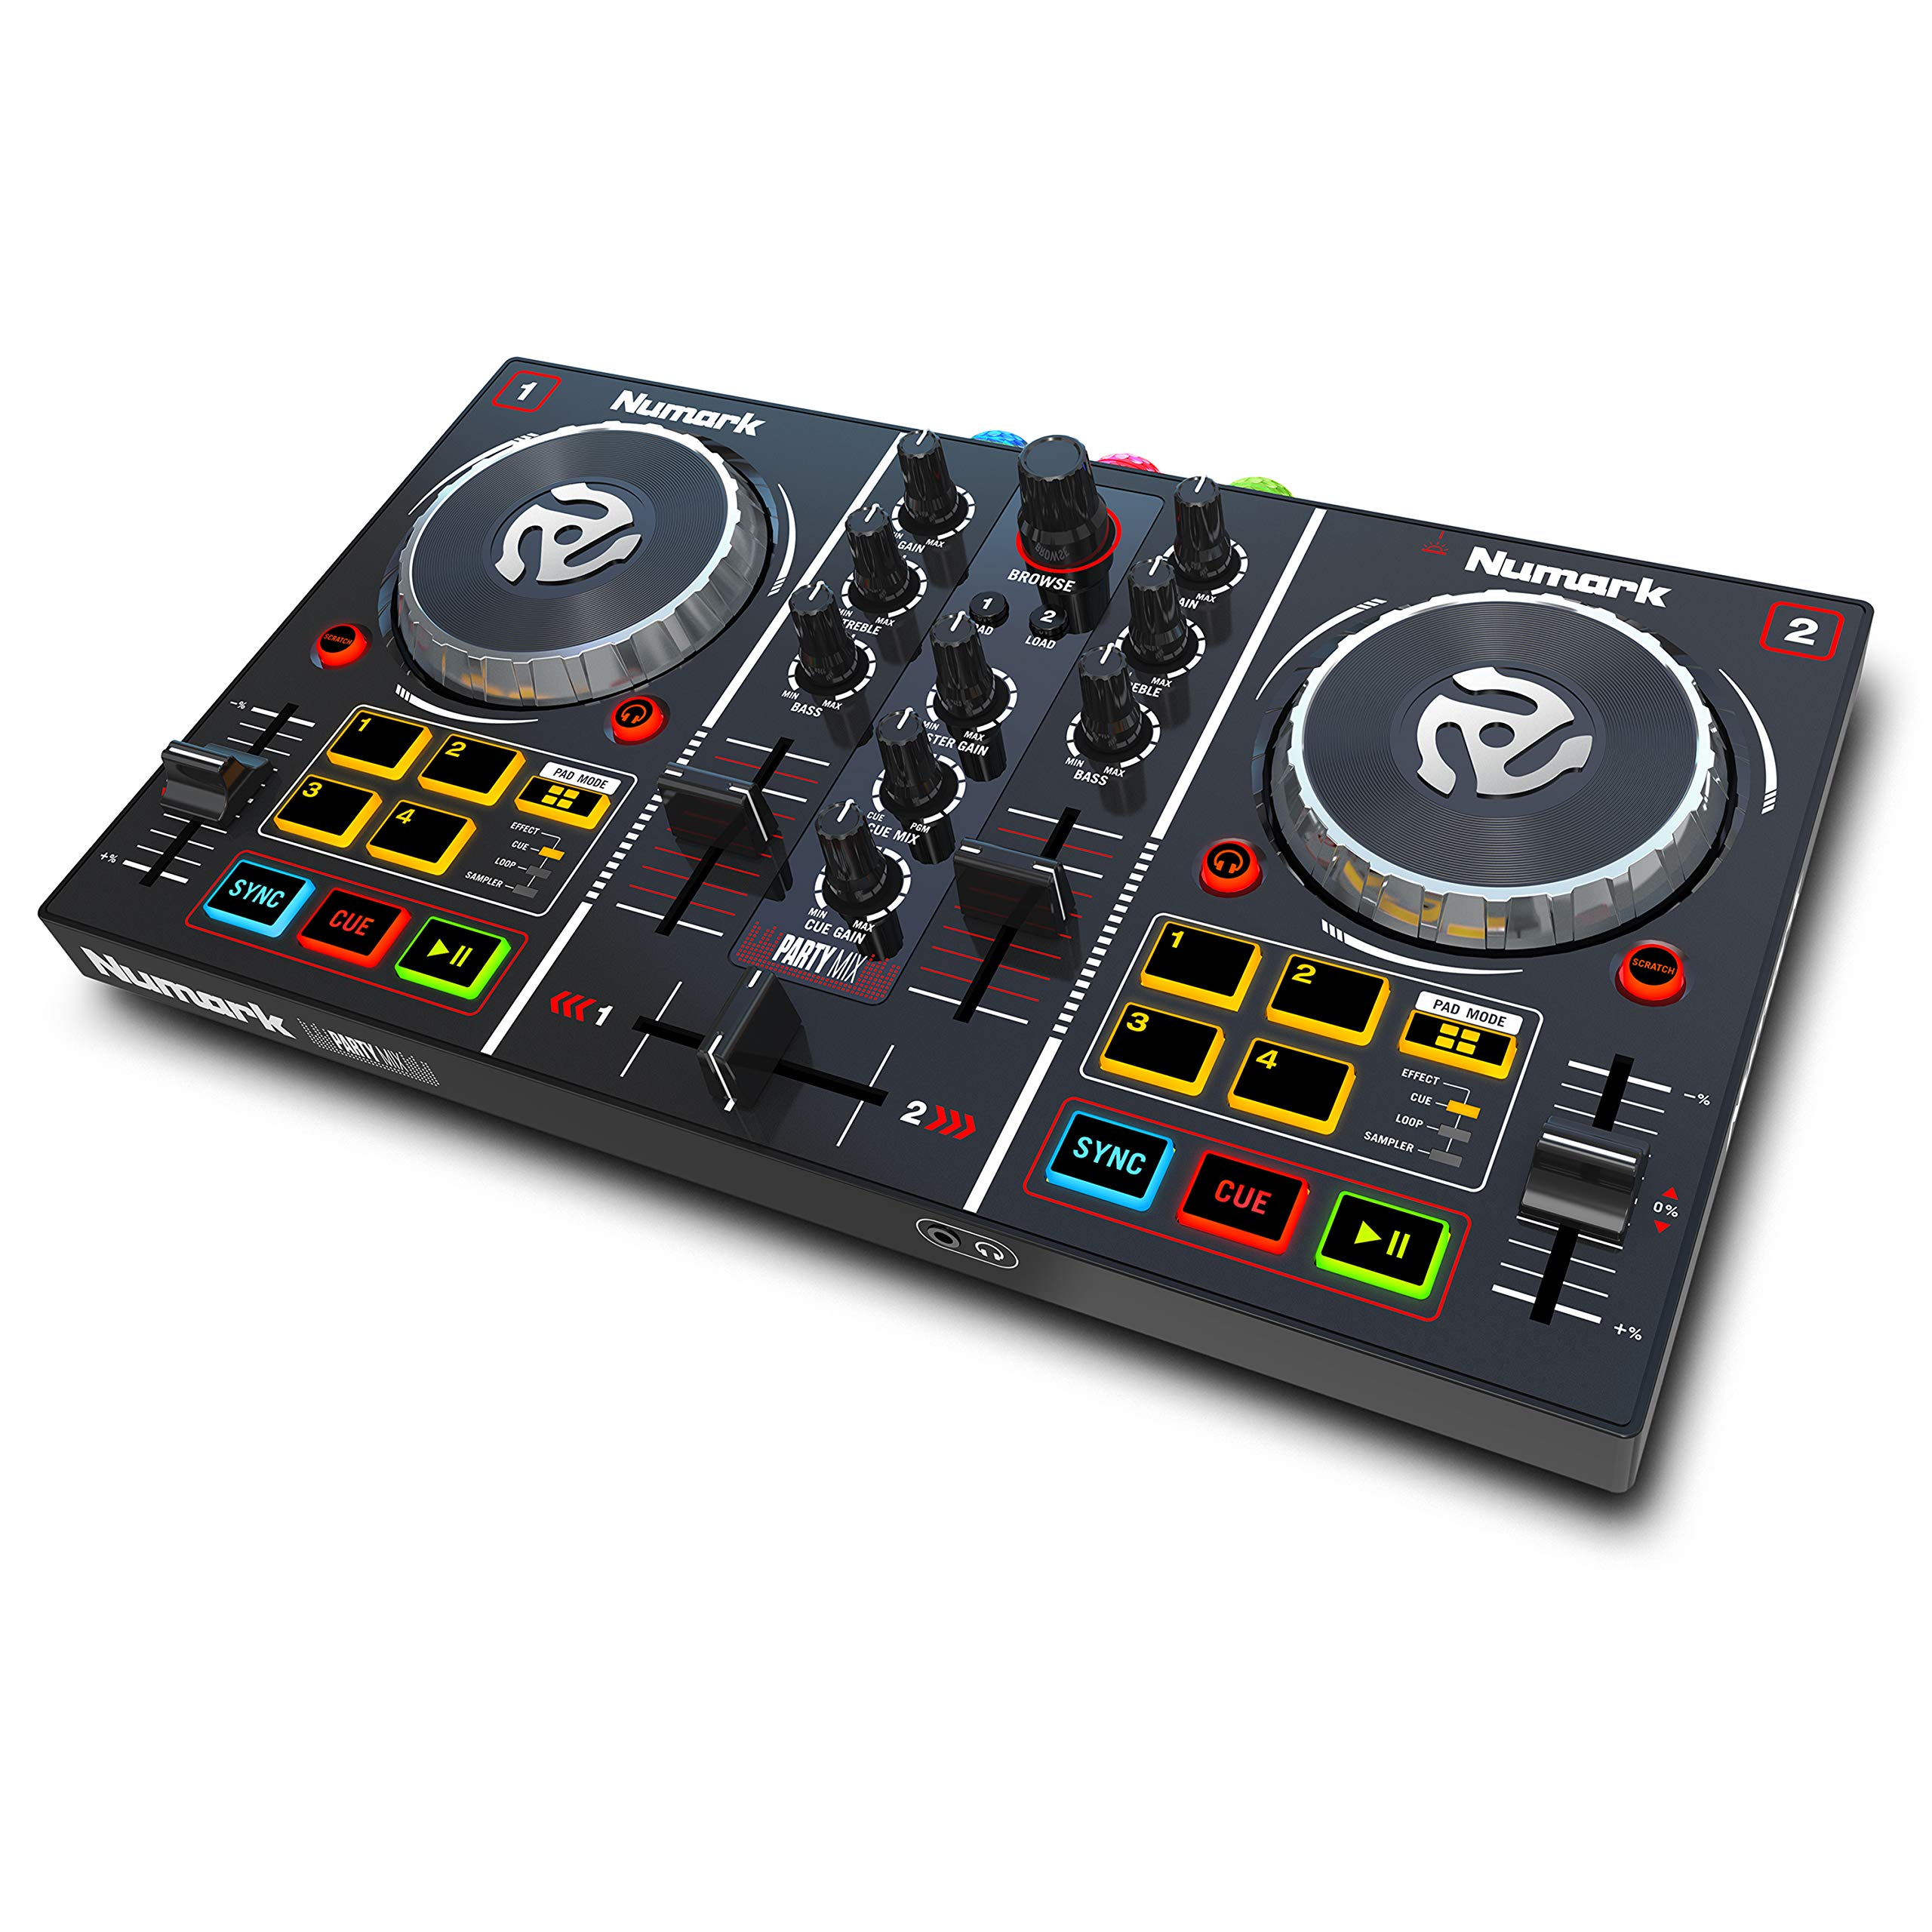 Numark Party Mix - Complete DJ Controller Set for Serato DJ with 2 Decks, Party Lights, Headphone Output, Performance Pads and Crossfader/Mixer